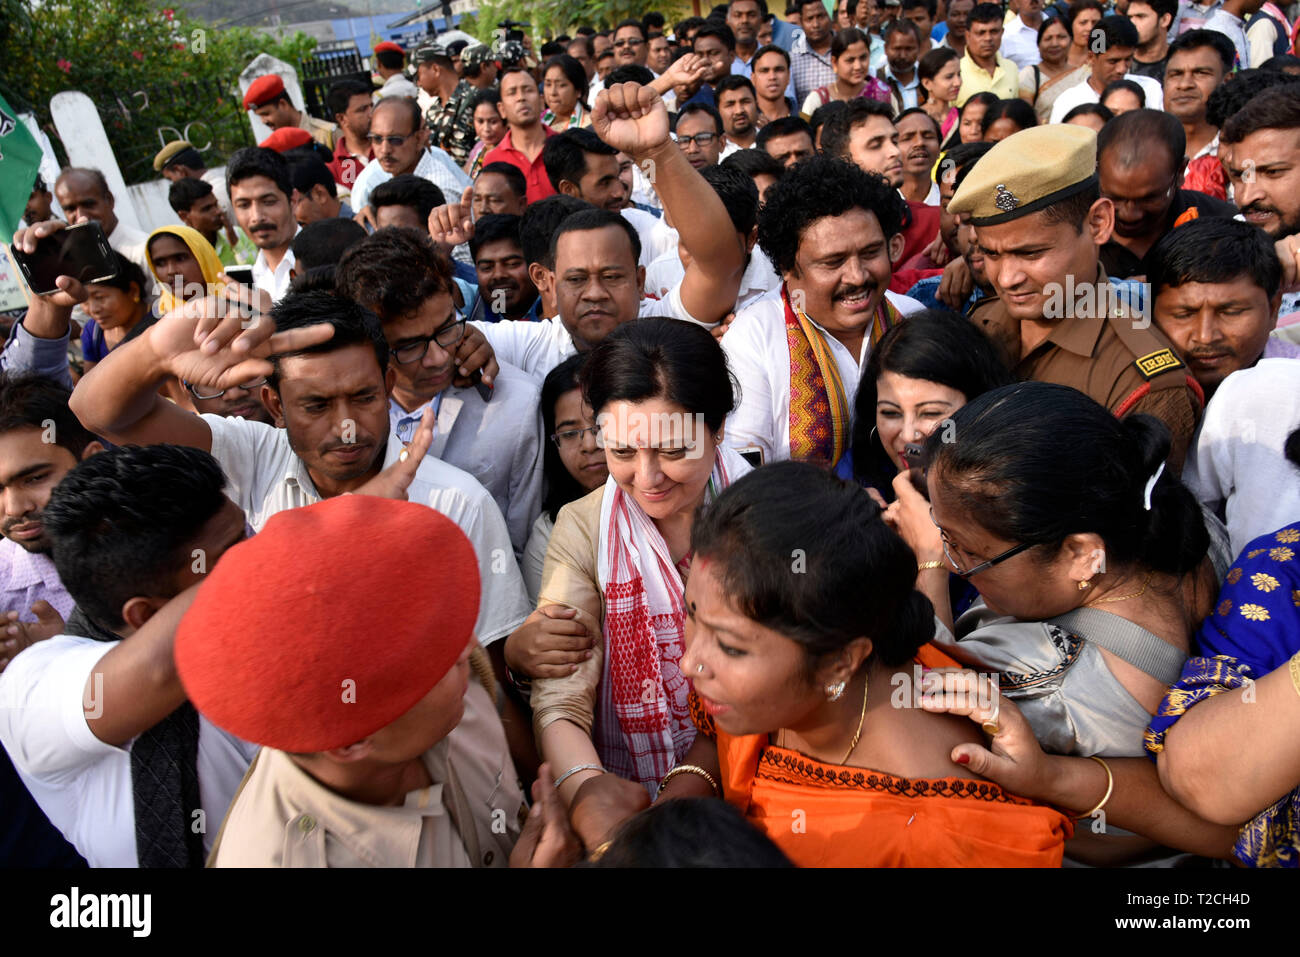 Guwahati, India. 1st Apr 2019. Congress party candidate from Guwahati constituency Bobeeta Sarma with the supporters after the nomination in Guwahati, Monday, April 1, 2019.  Credit: David Talukdar/Alamy Live News - Stock Image